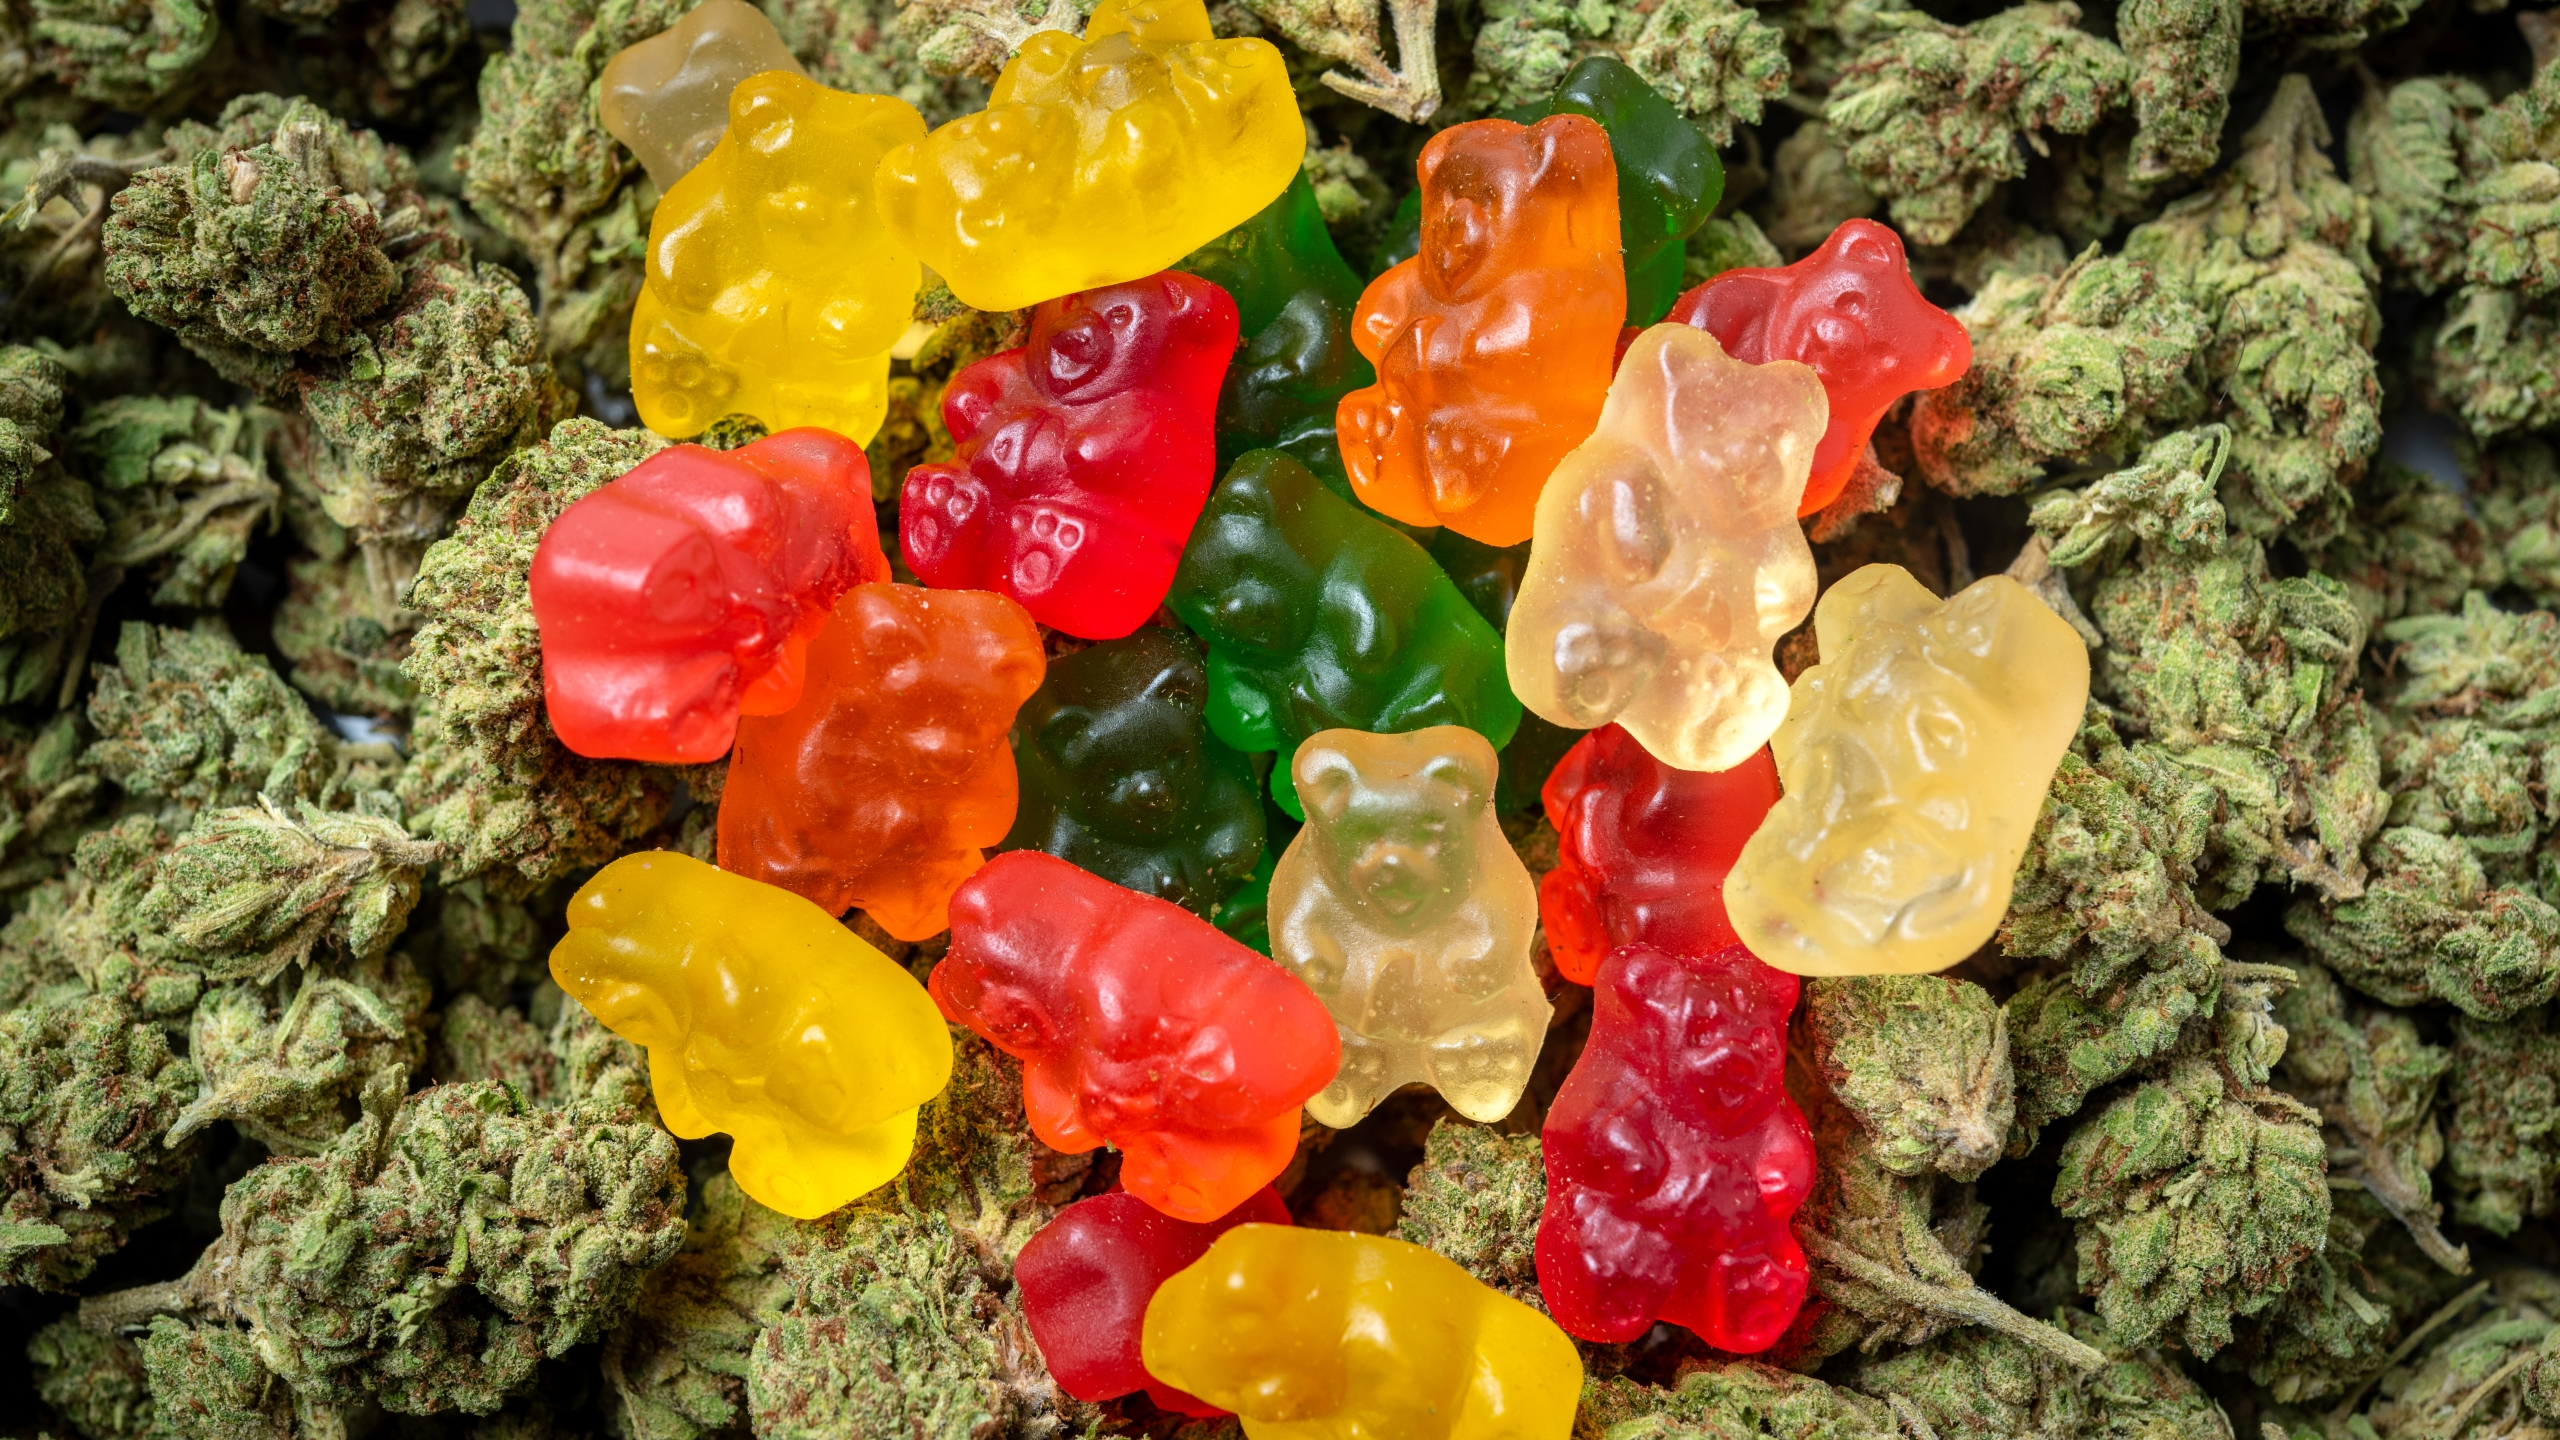 A stack of marijuana gummy bear candies is seen in this file photo. (Credit: iStock / Getty Images)